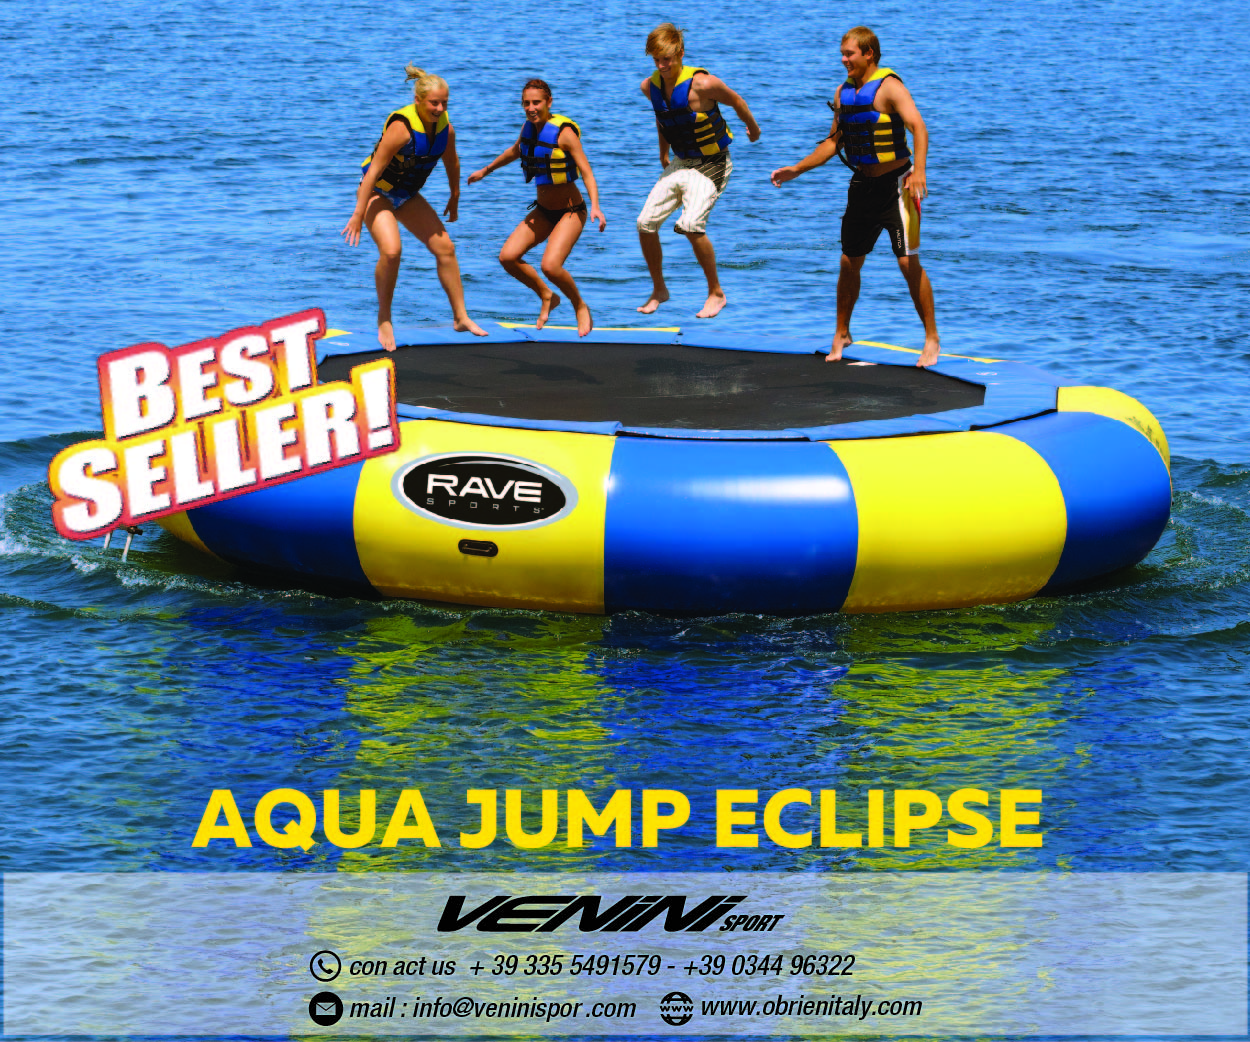 Acqua Jump Eclipse